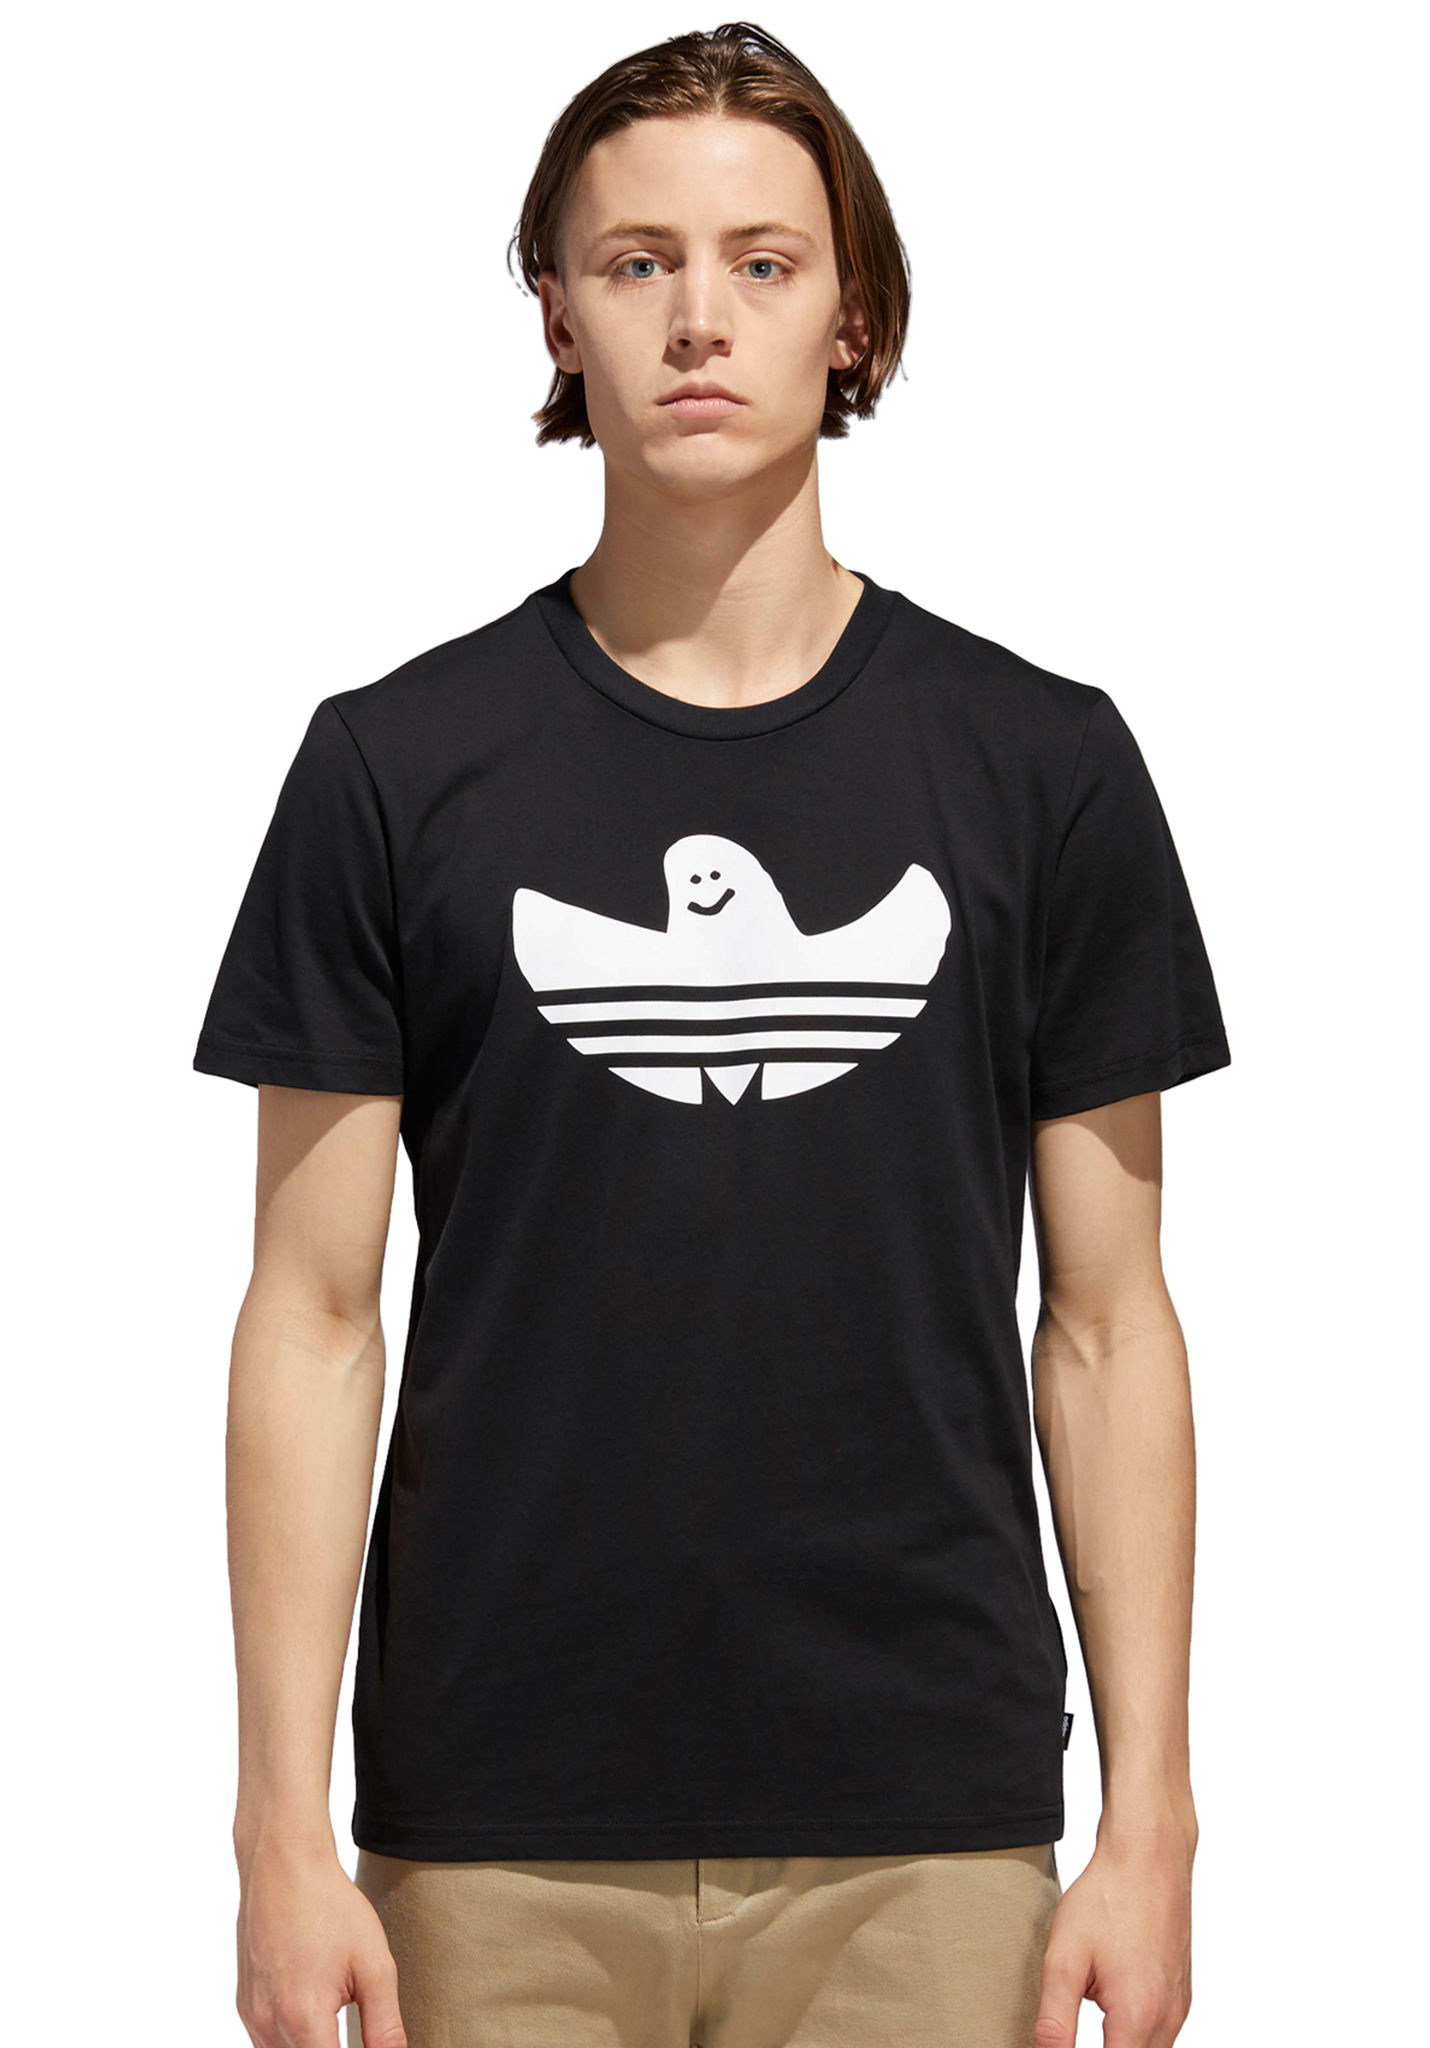 5c48d010 Adidas Skateboarding Solid Shmoo - T-Shirt for Men - Black - Planet Sports